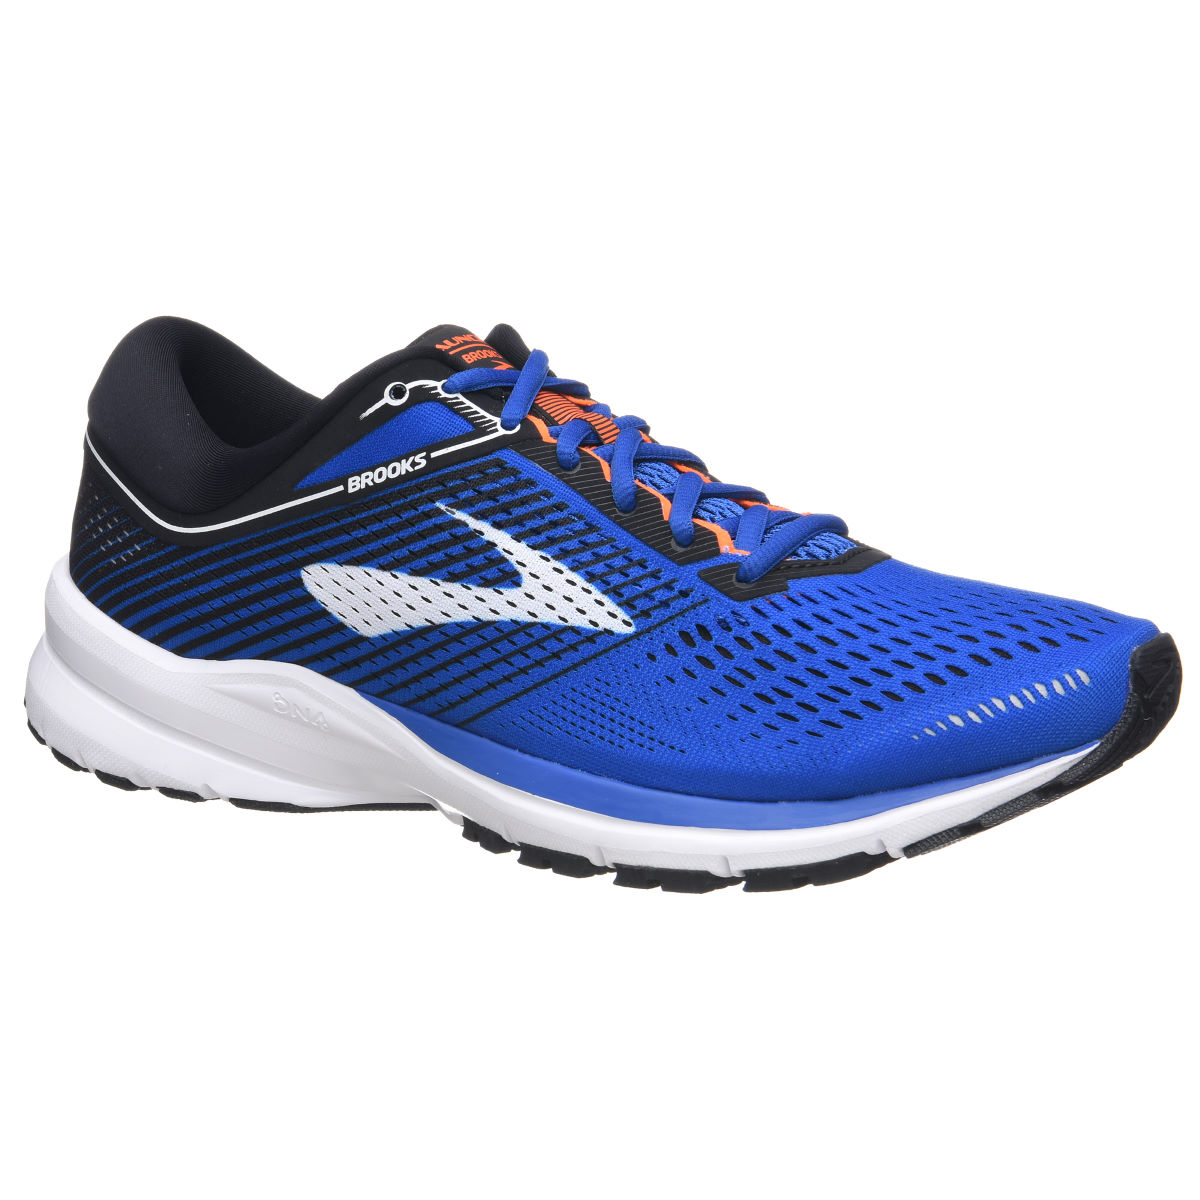 Brooks Launch 5 Shoes - Zapatillas de running